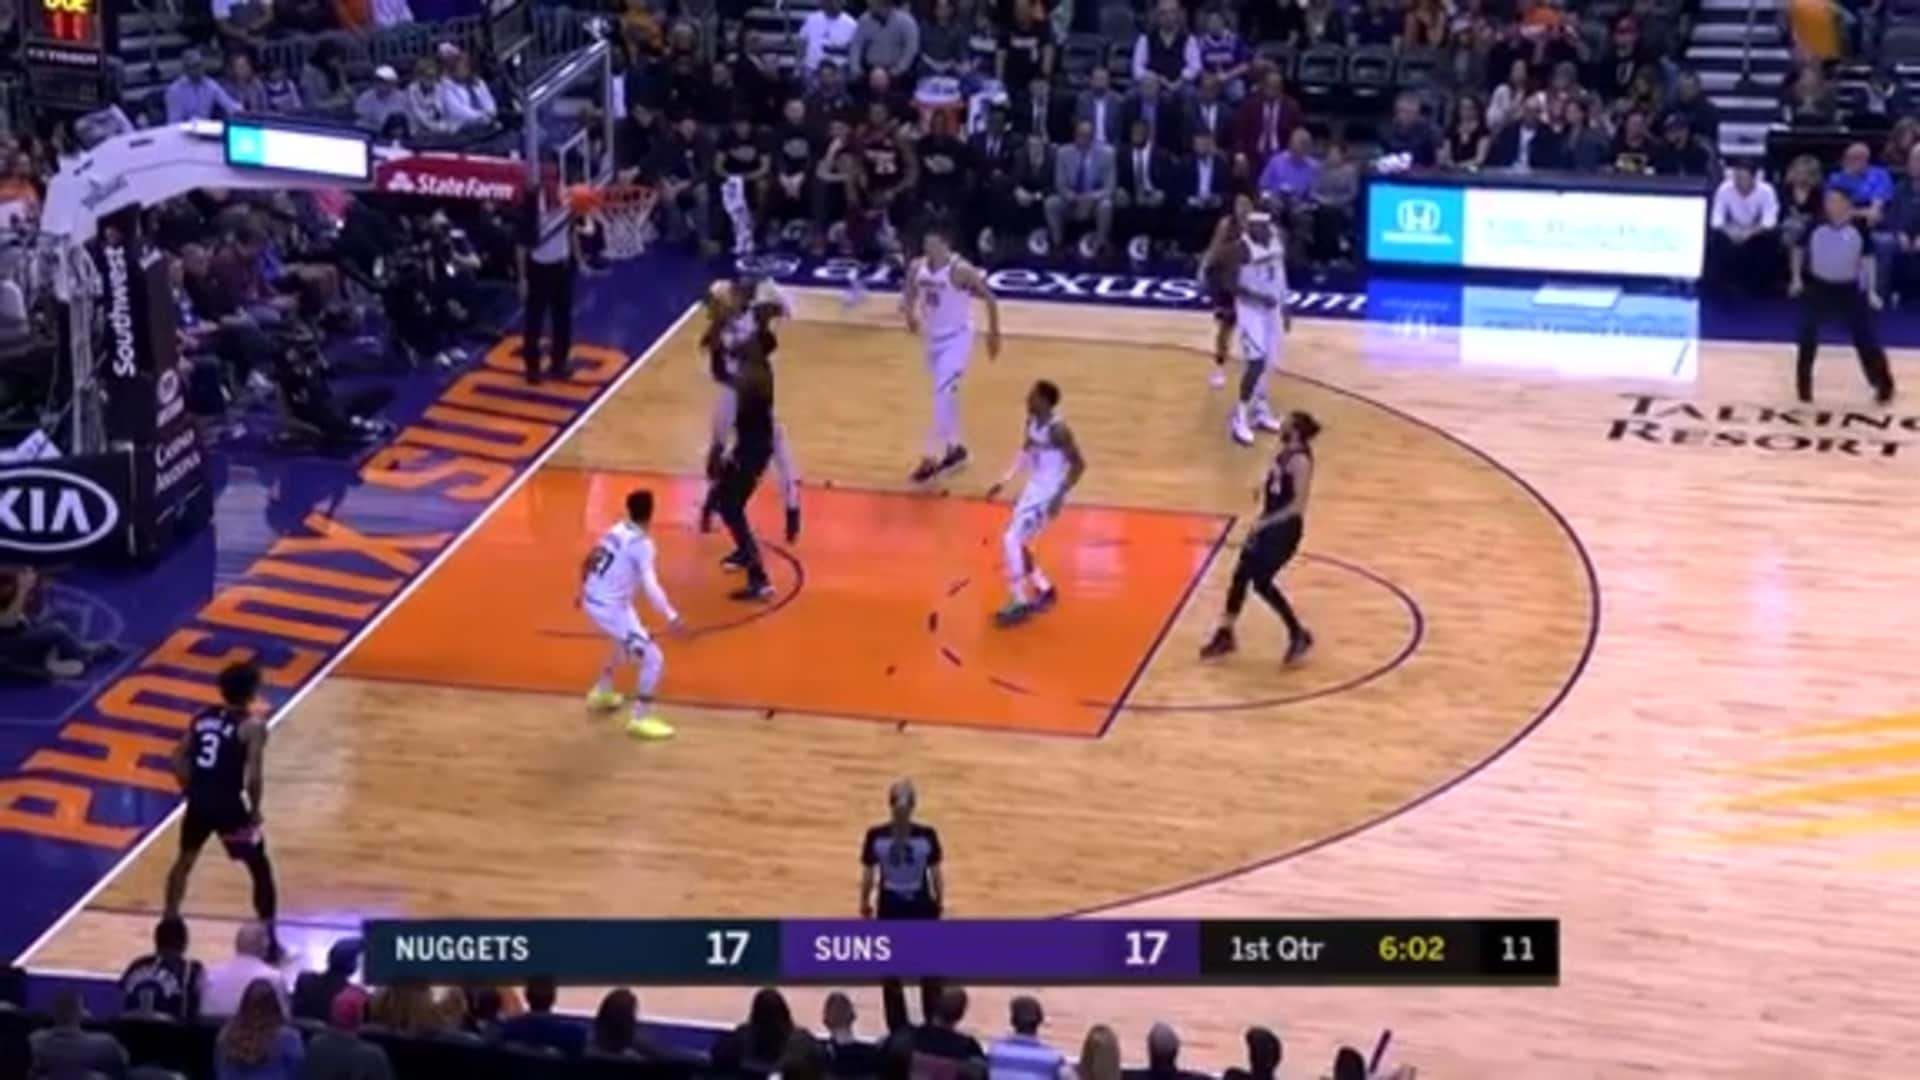 Rubio Finds Ayton for Two-Handed Dunk